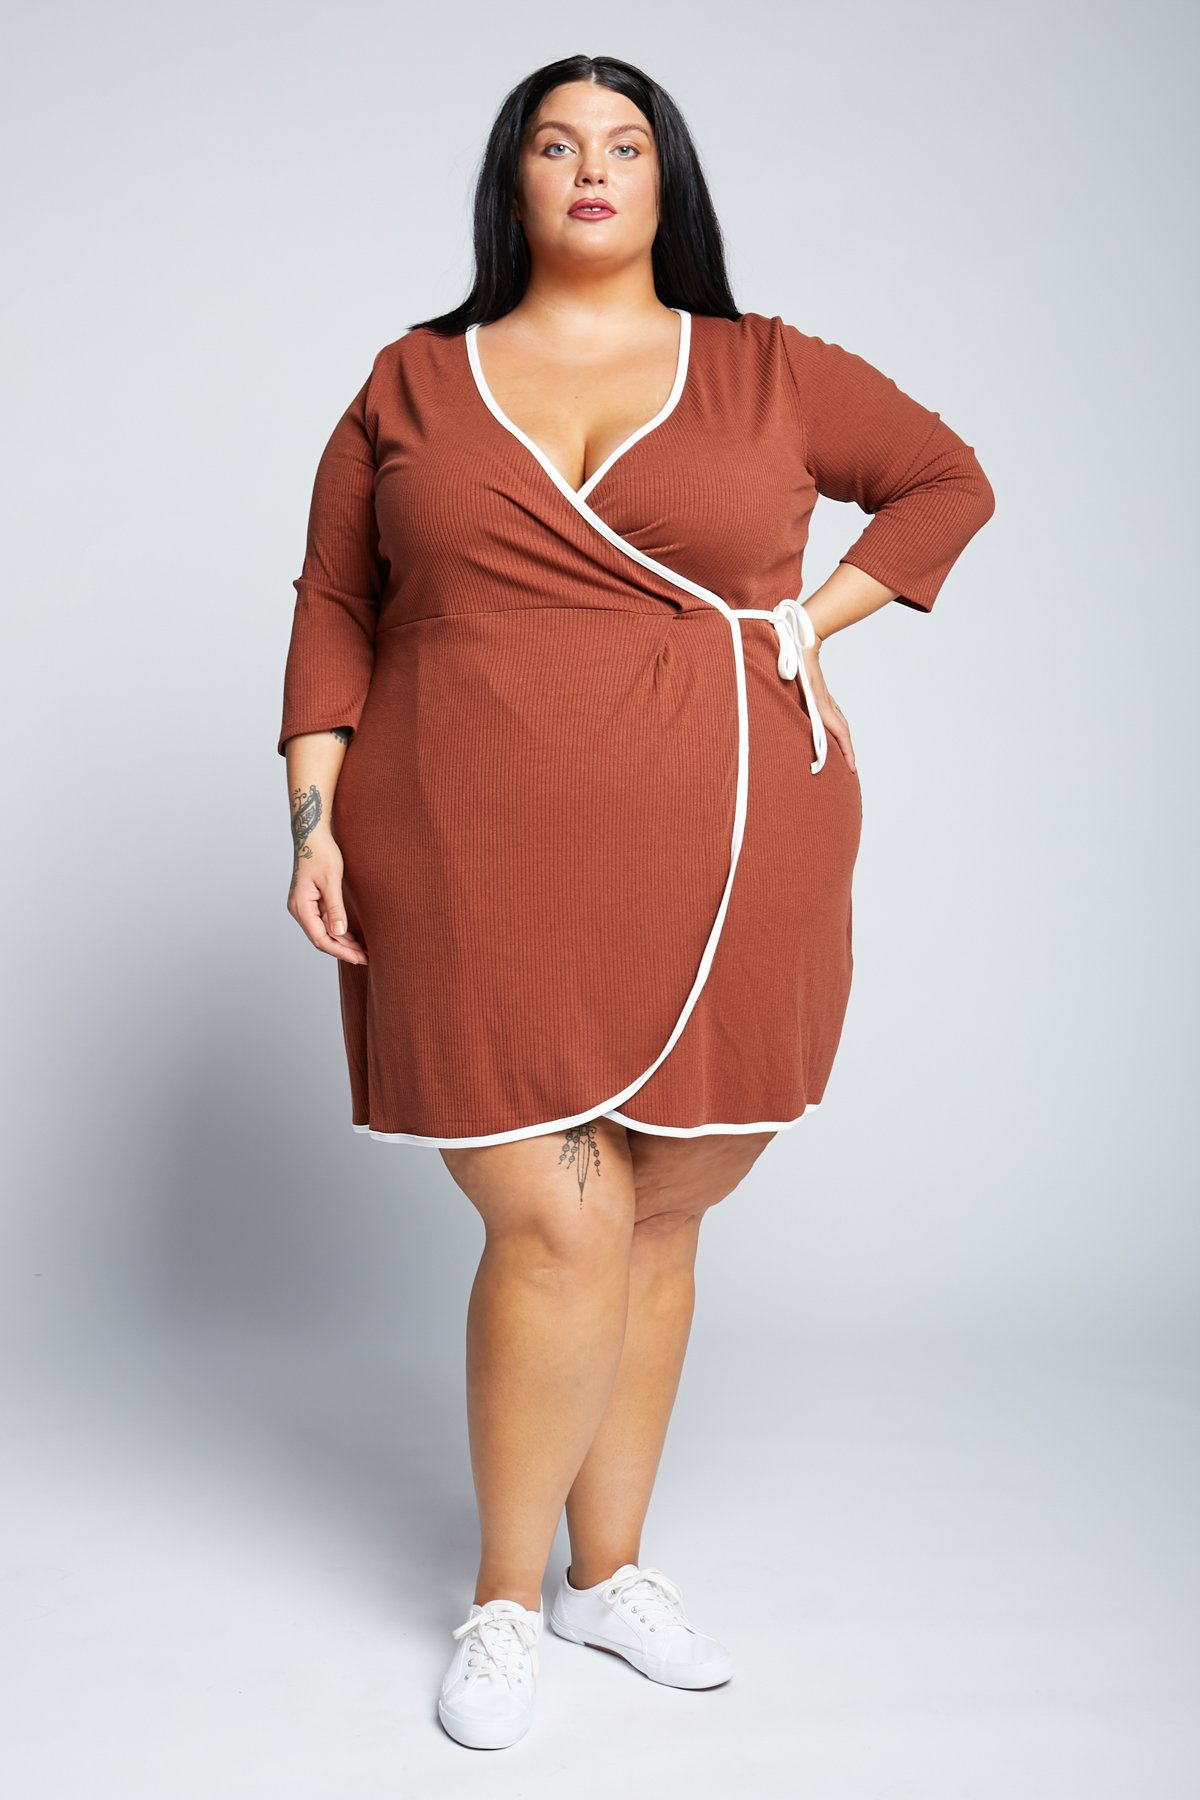 a8e5b1f74c0 Soncy Is The New Plus Size Brand Making Affordable Fashion Up To Size 30